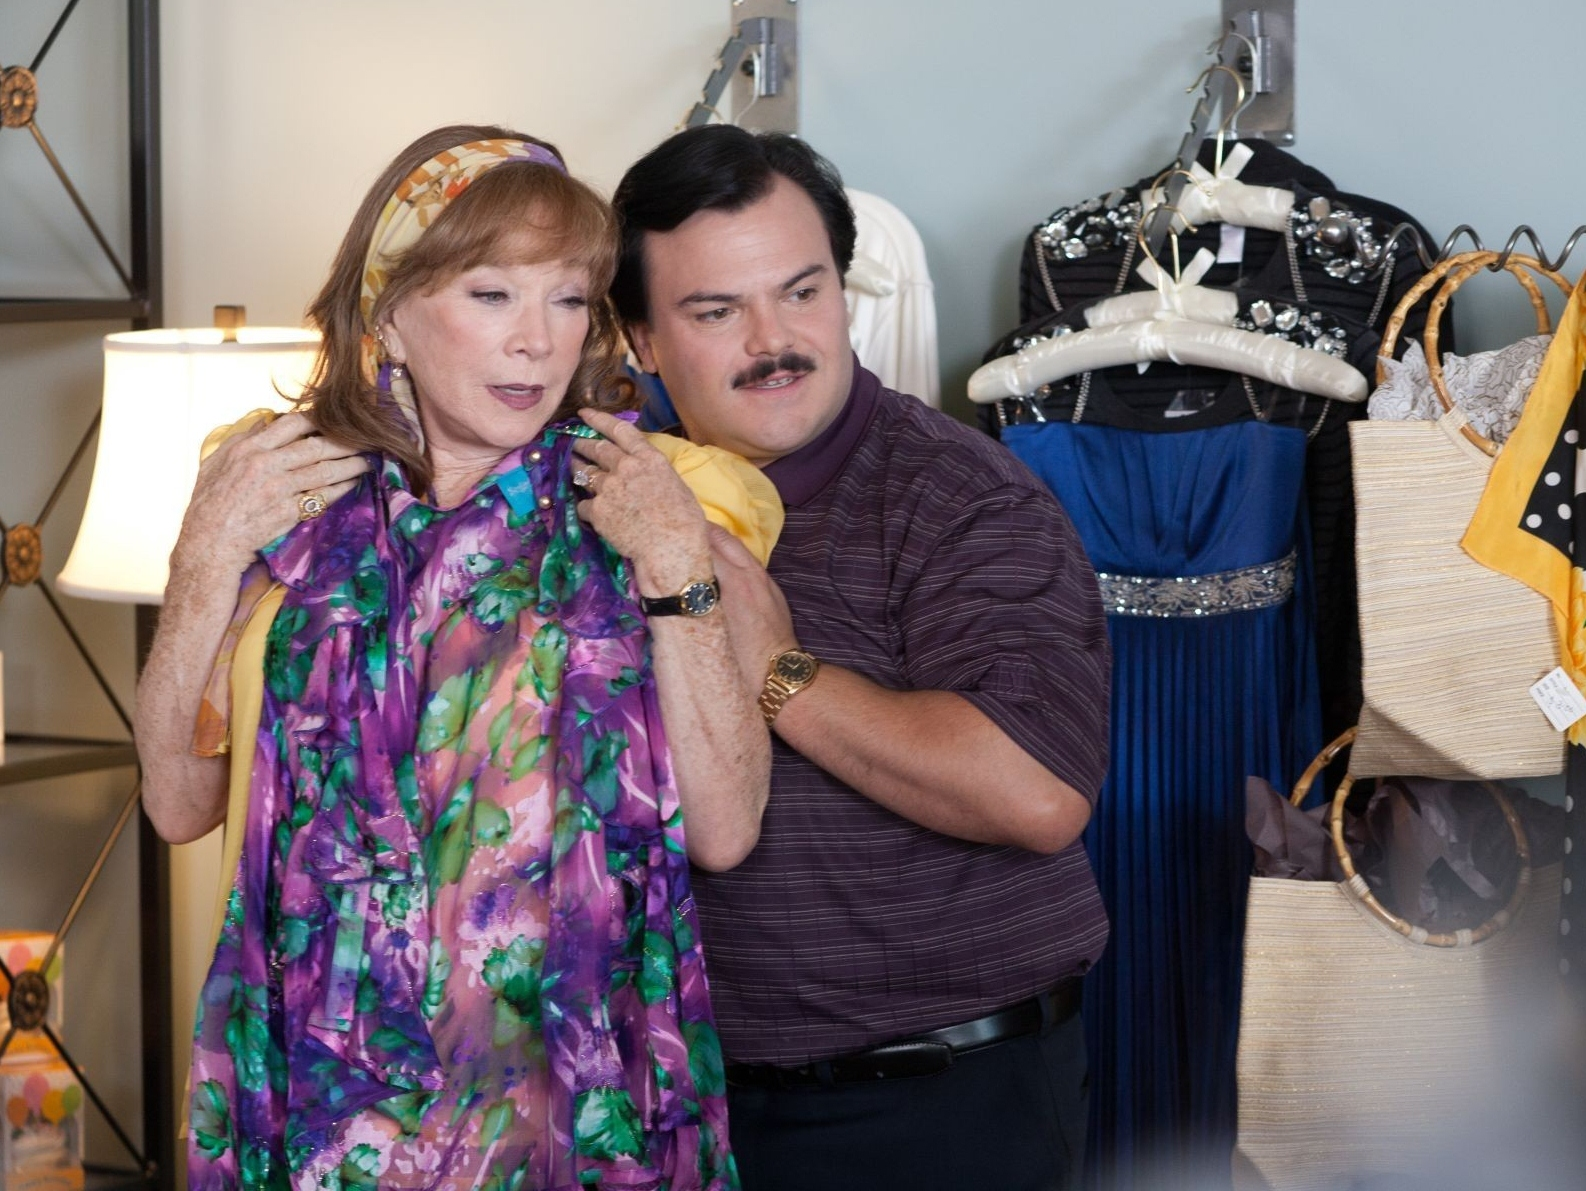 'Bernie' Blu-ray Review: Jack Black Reborn as Mustachioed Killer